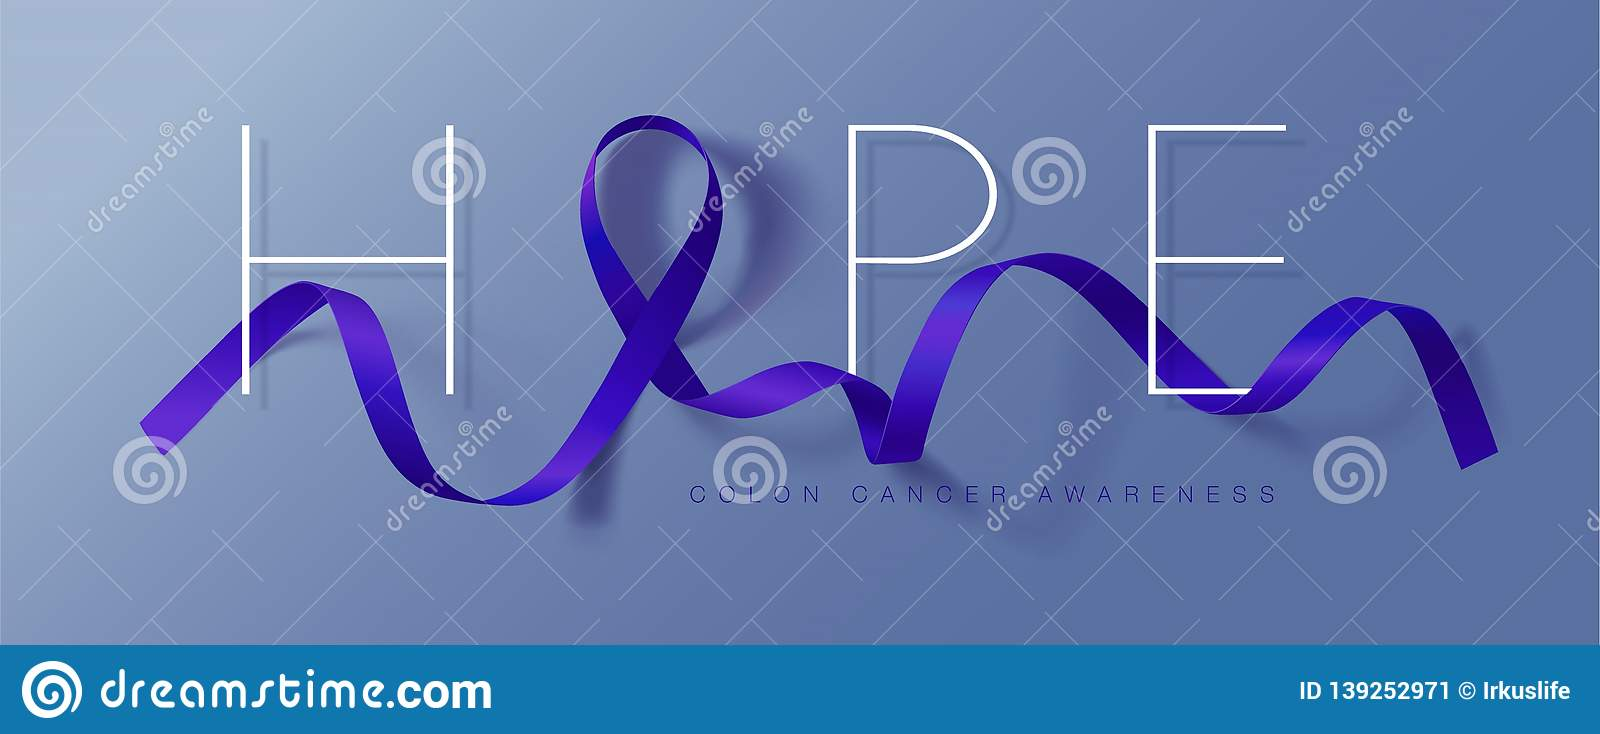 Colon Cancer Awareness Calligraphy Poster Design Realistic Dark Blue Ribbon March Is Cancer Awareness Month Vector Stock Illustration Illustration Of Hope Graphic 139252971